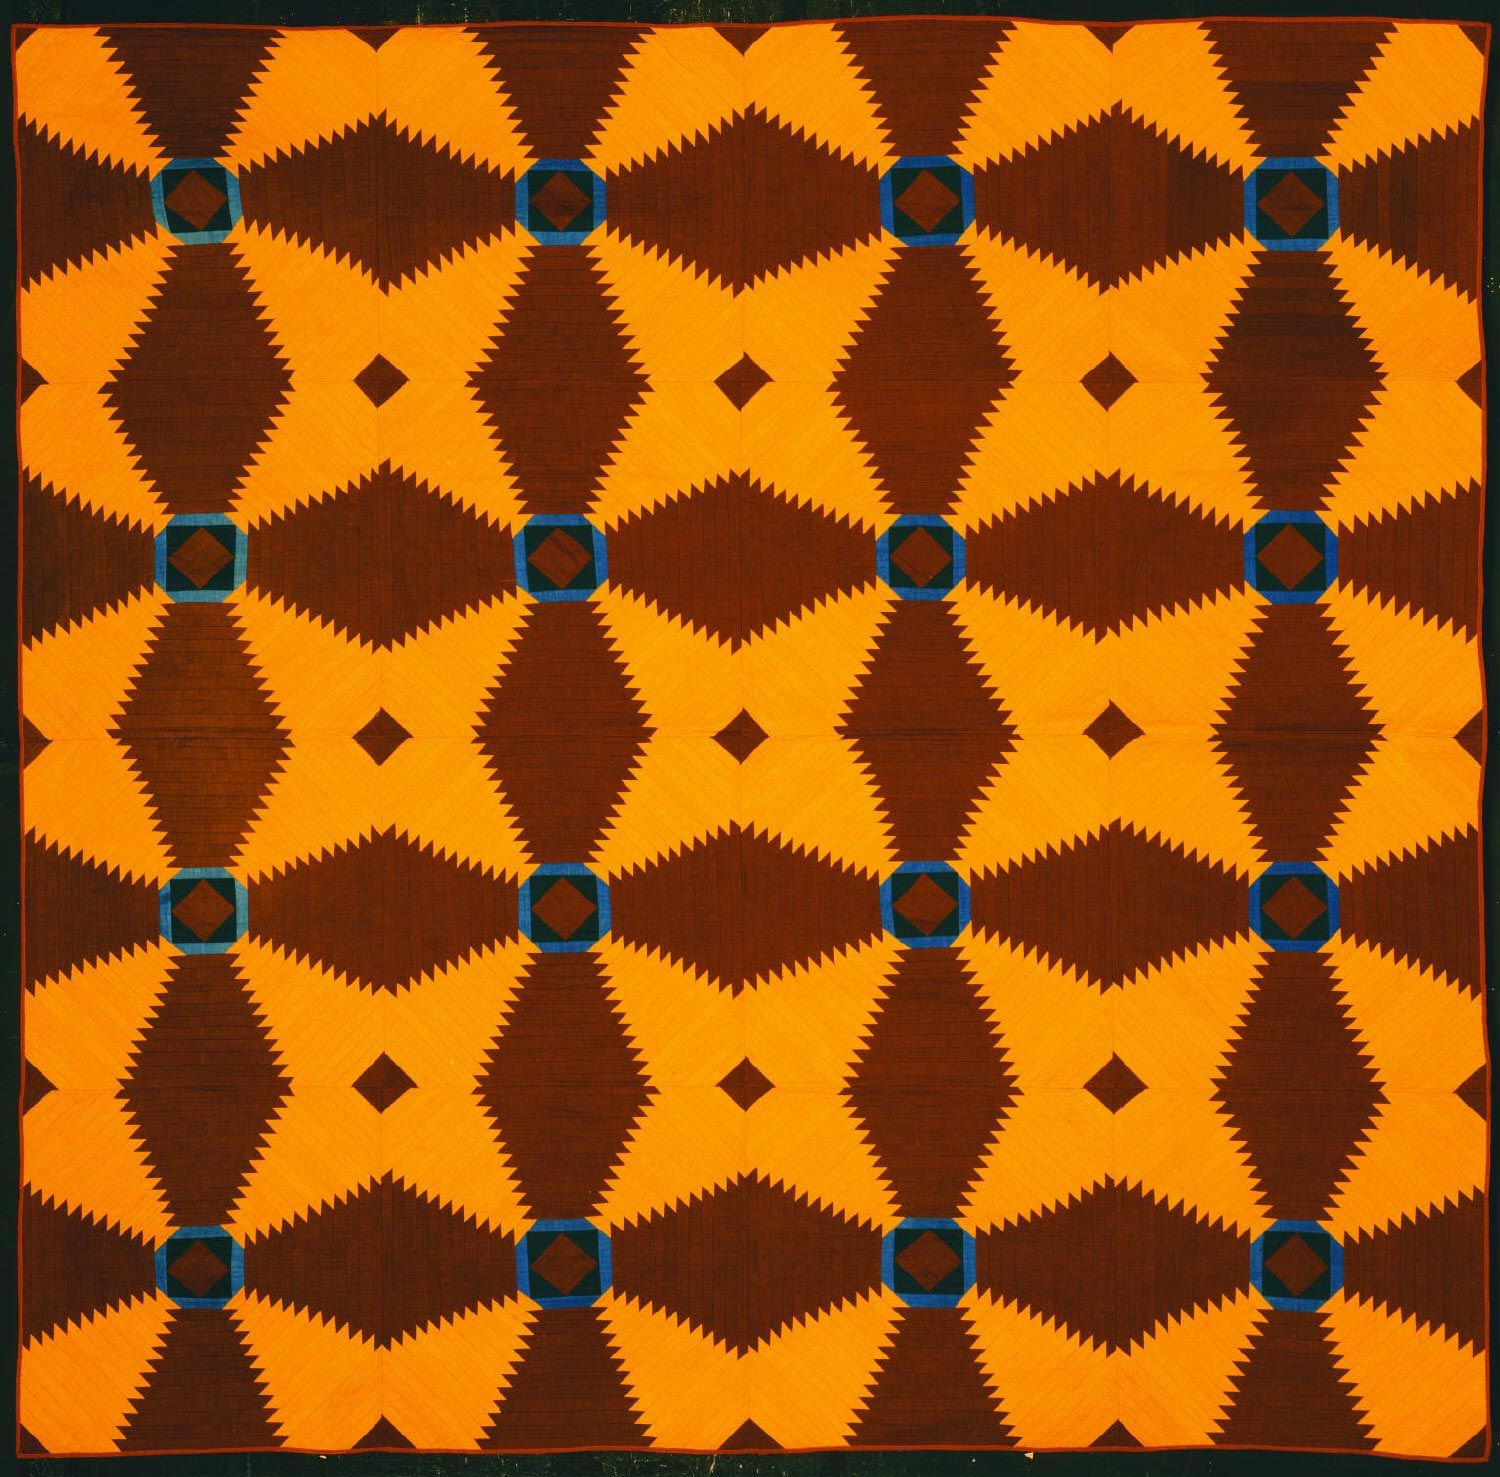 Philadelphia Museum of Art - Collections Object : Quilt (Maltese Cross Pattern)